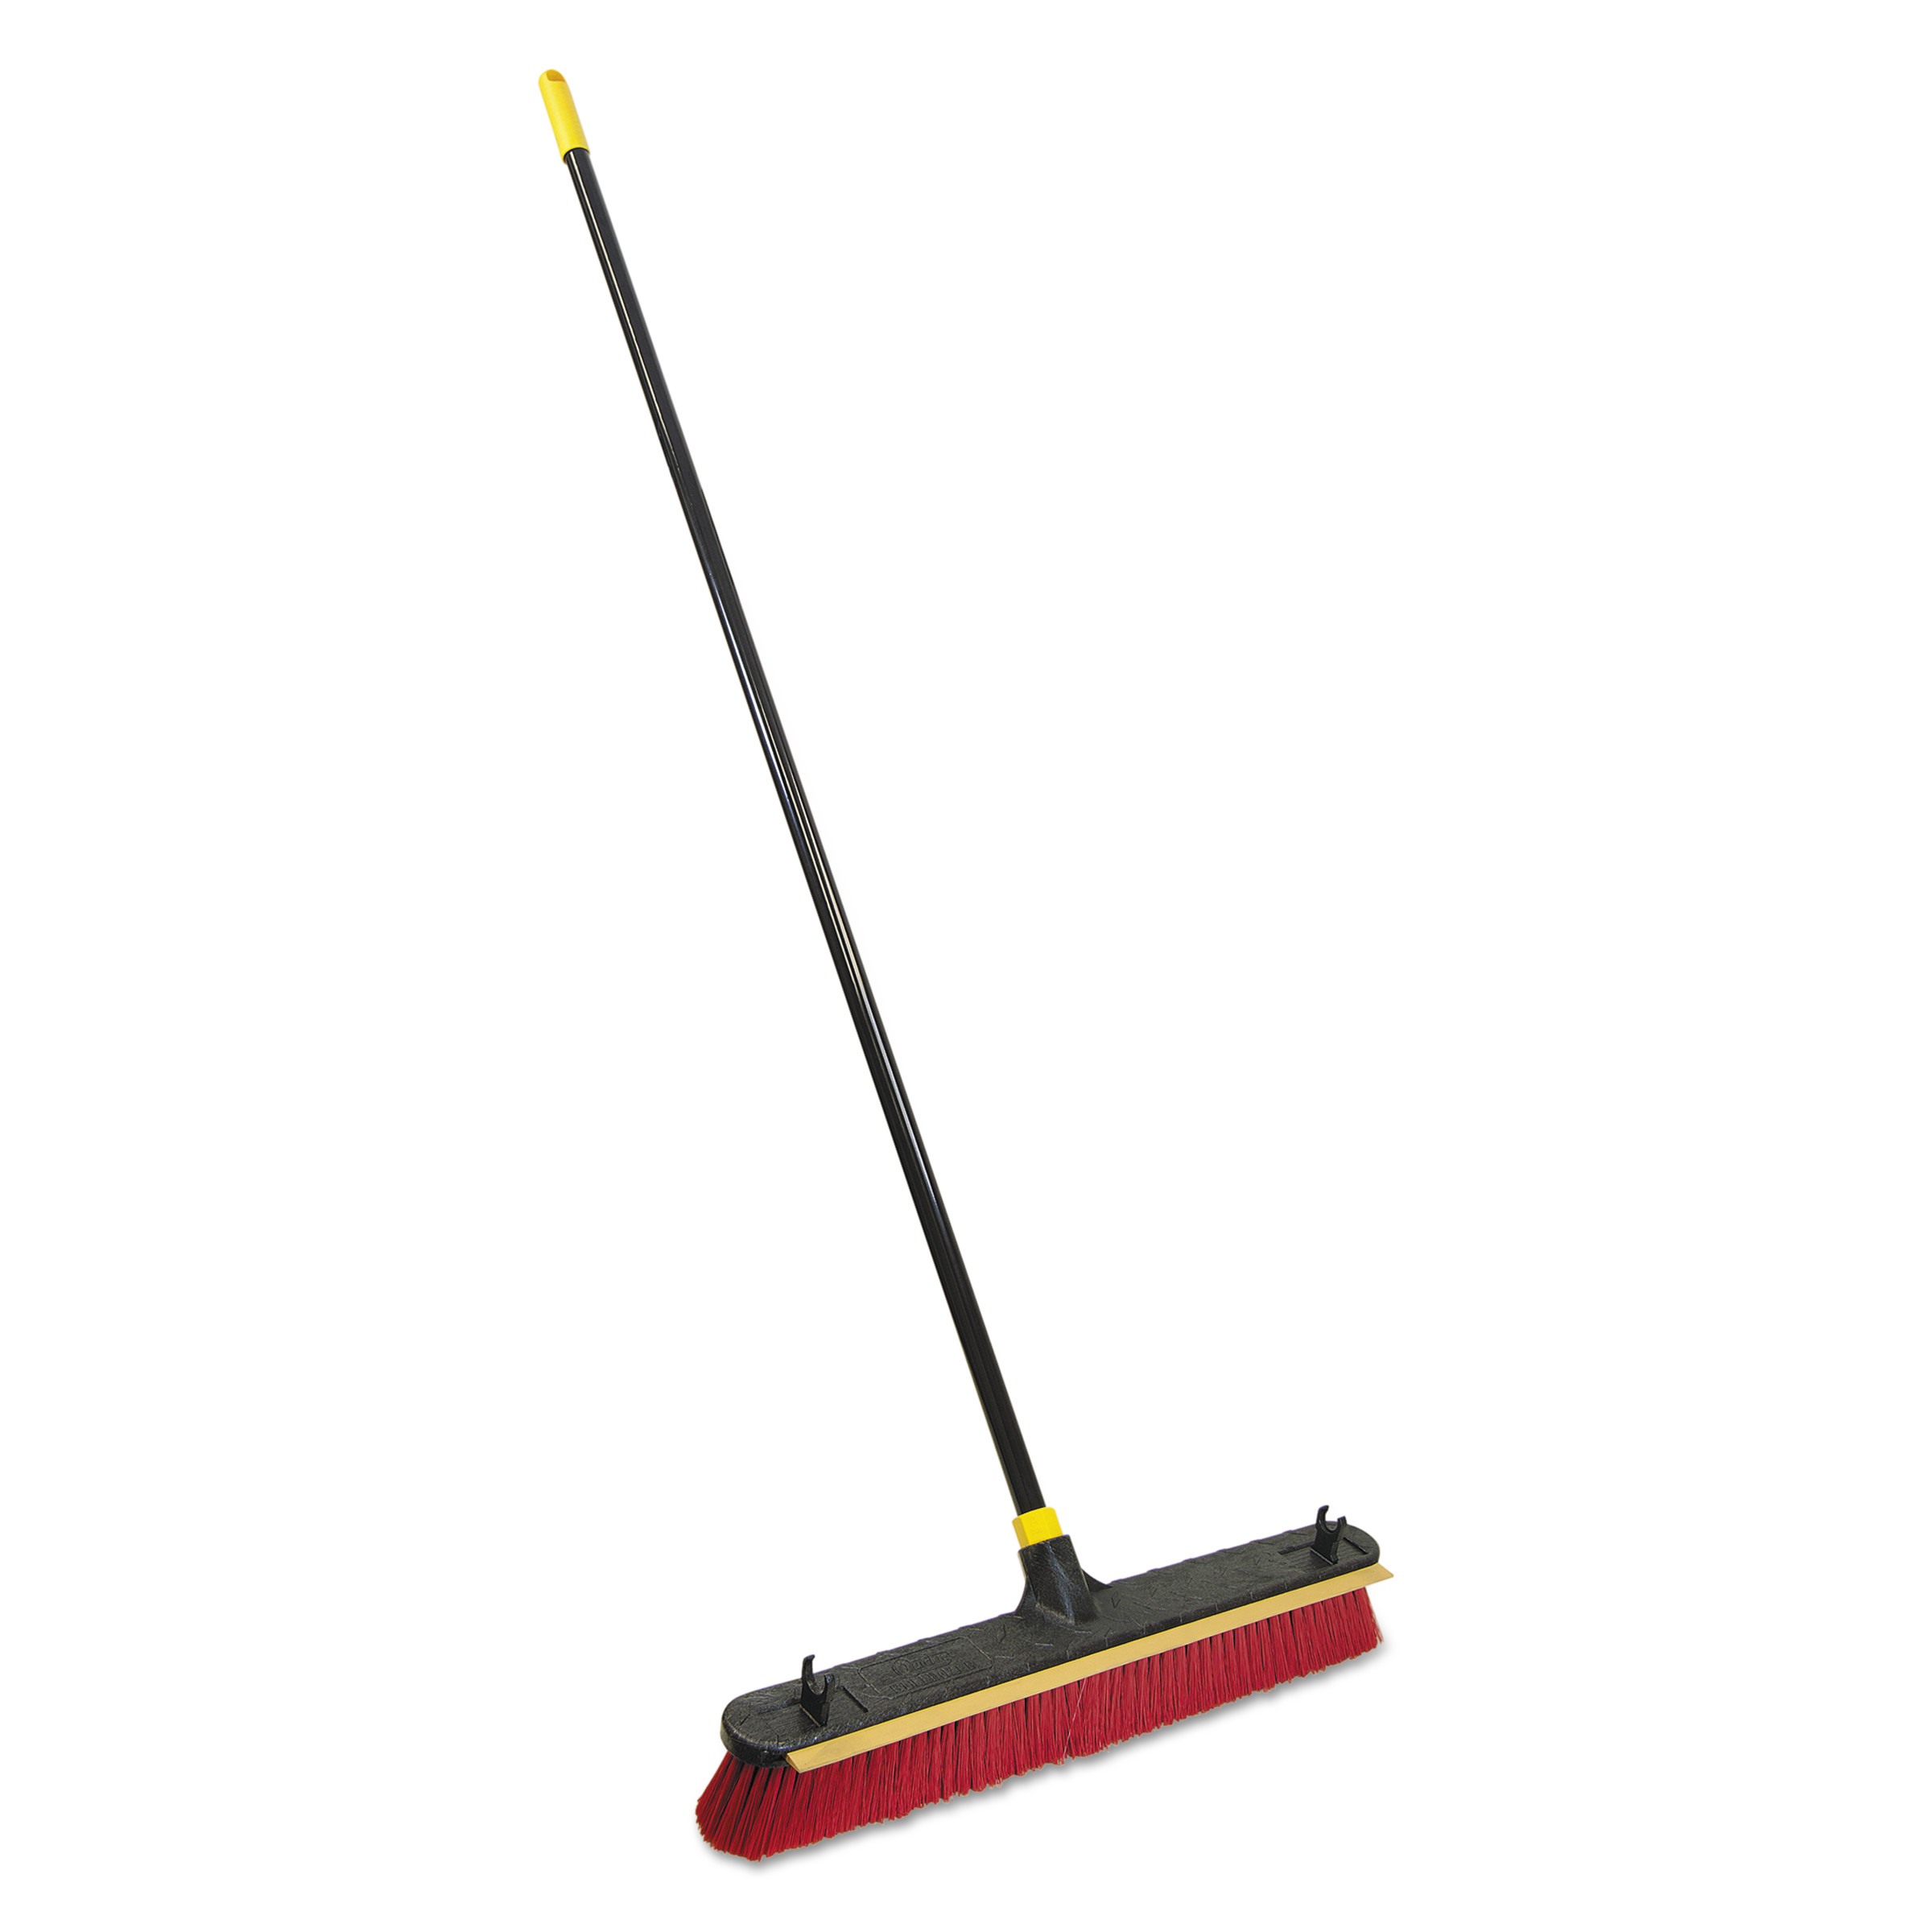 """Quickie 2-in-1 Squeegee Pushbroom, 24"""" Brush, 60"""" Handle, PET/Steel, Red/Black/Yellow"""